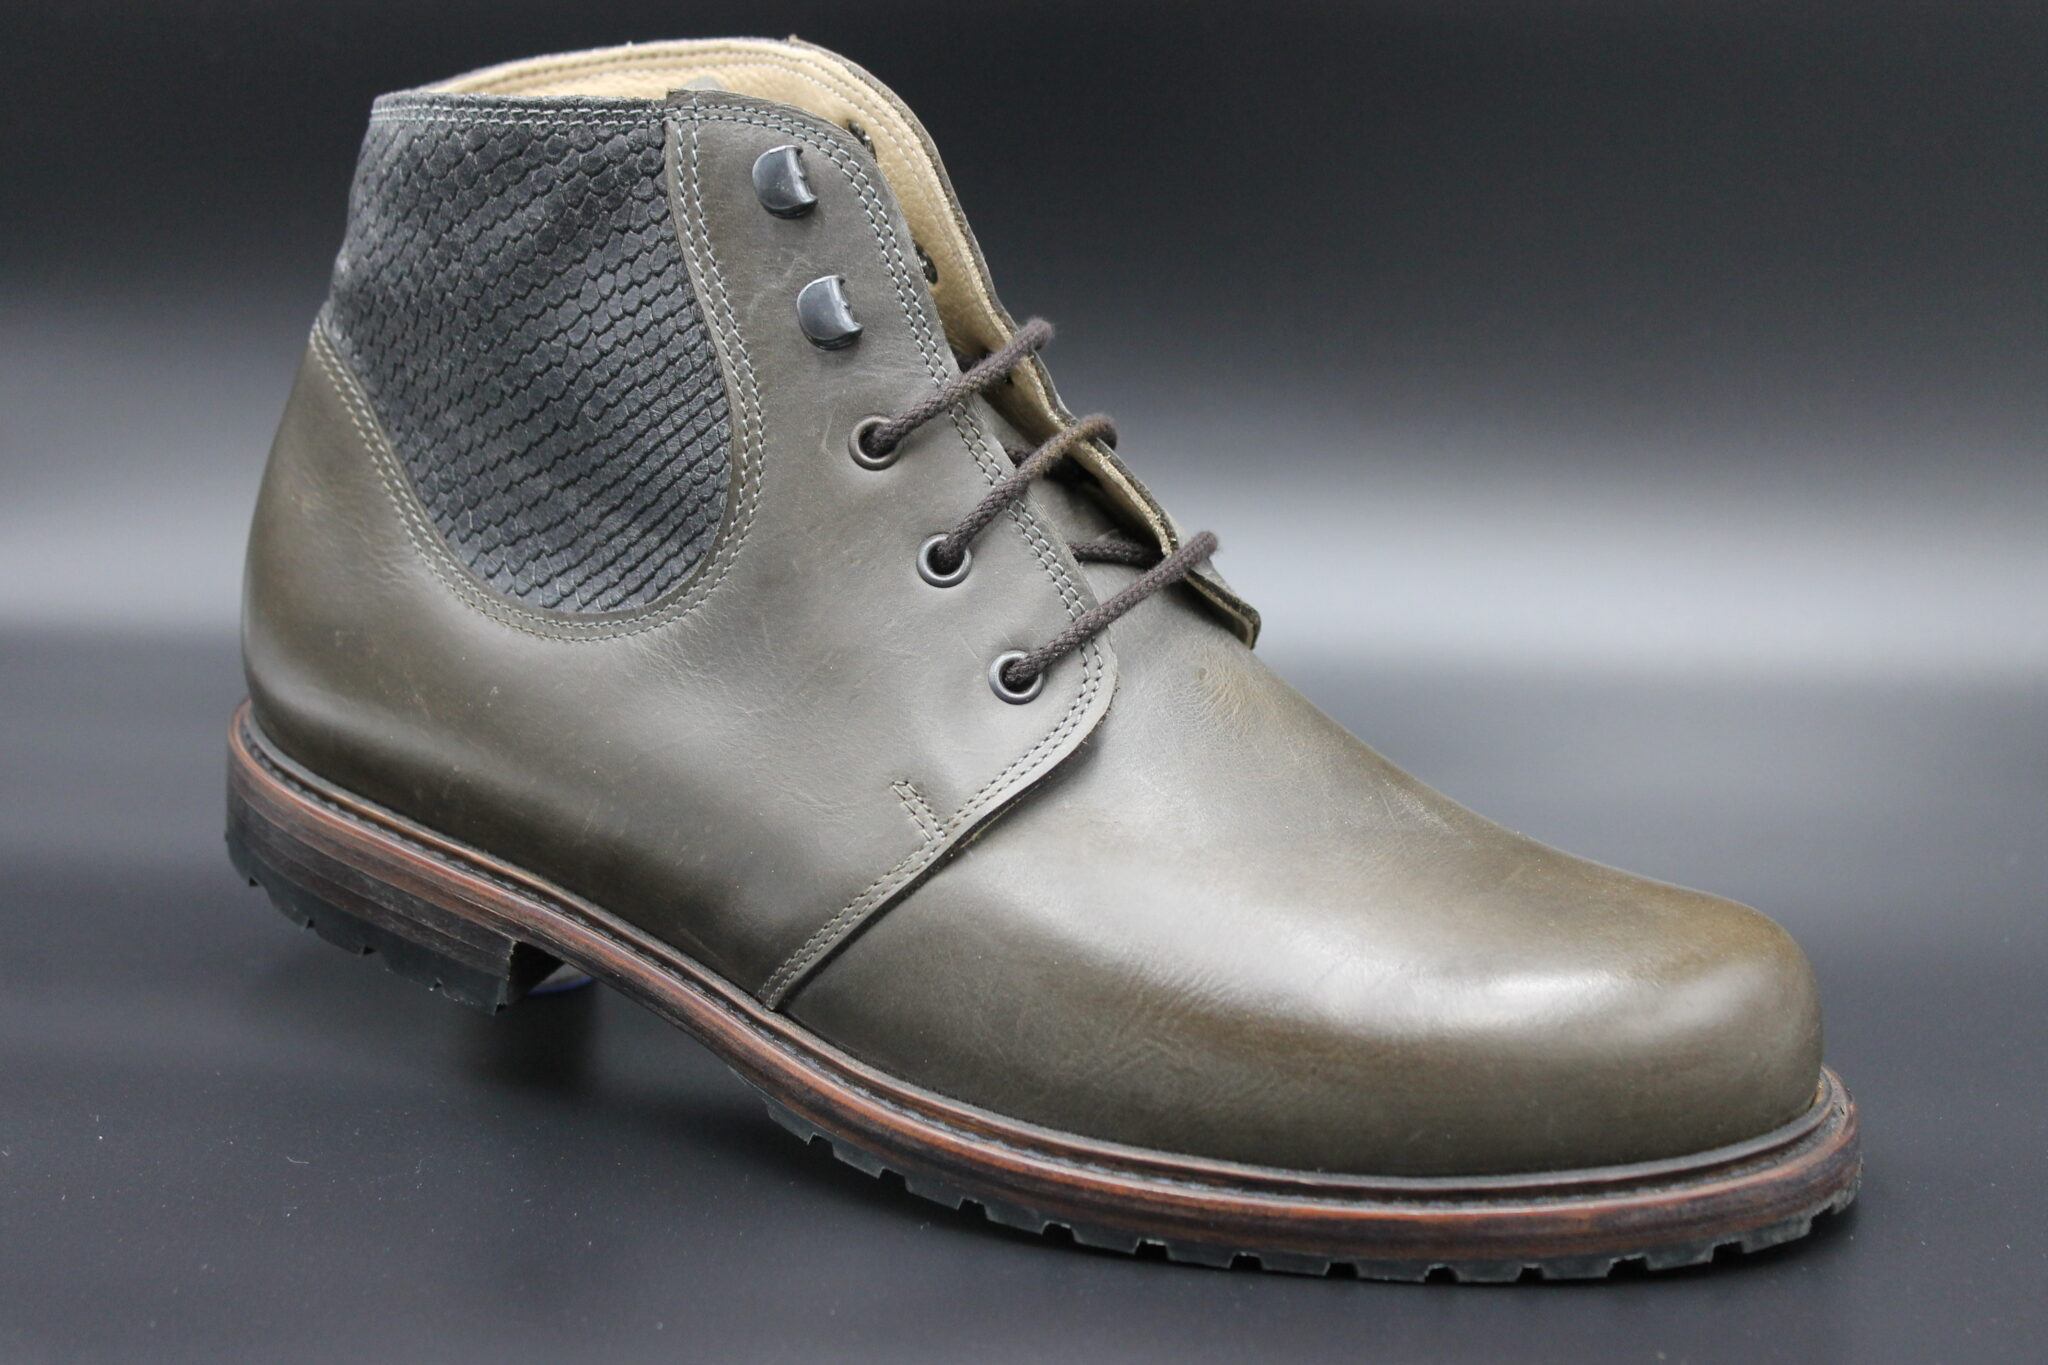 baur-ortho_exclusive-maßschuhe_stiefelette_02